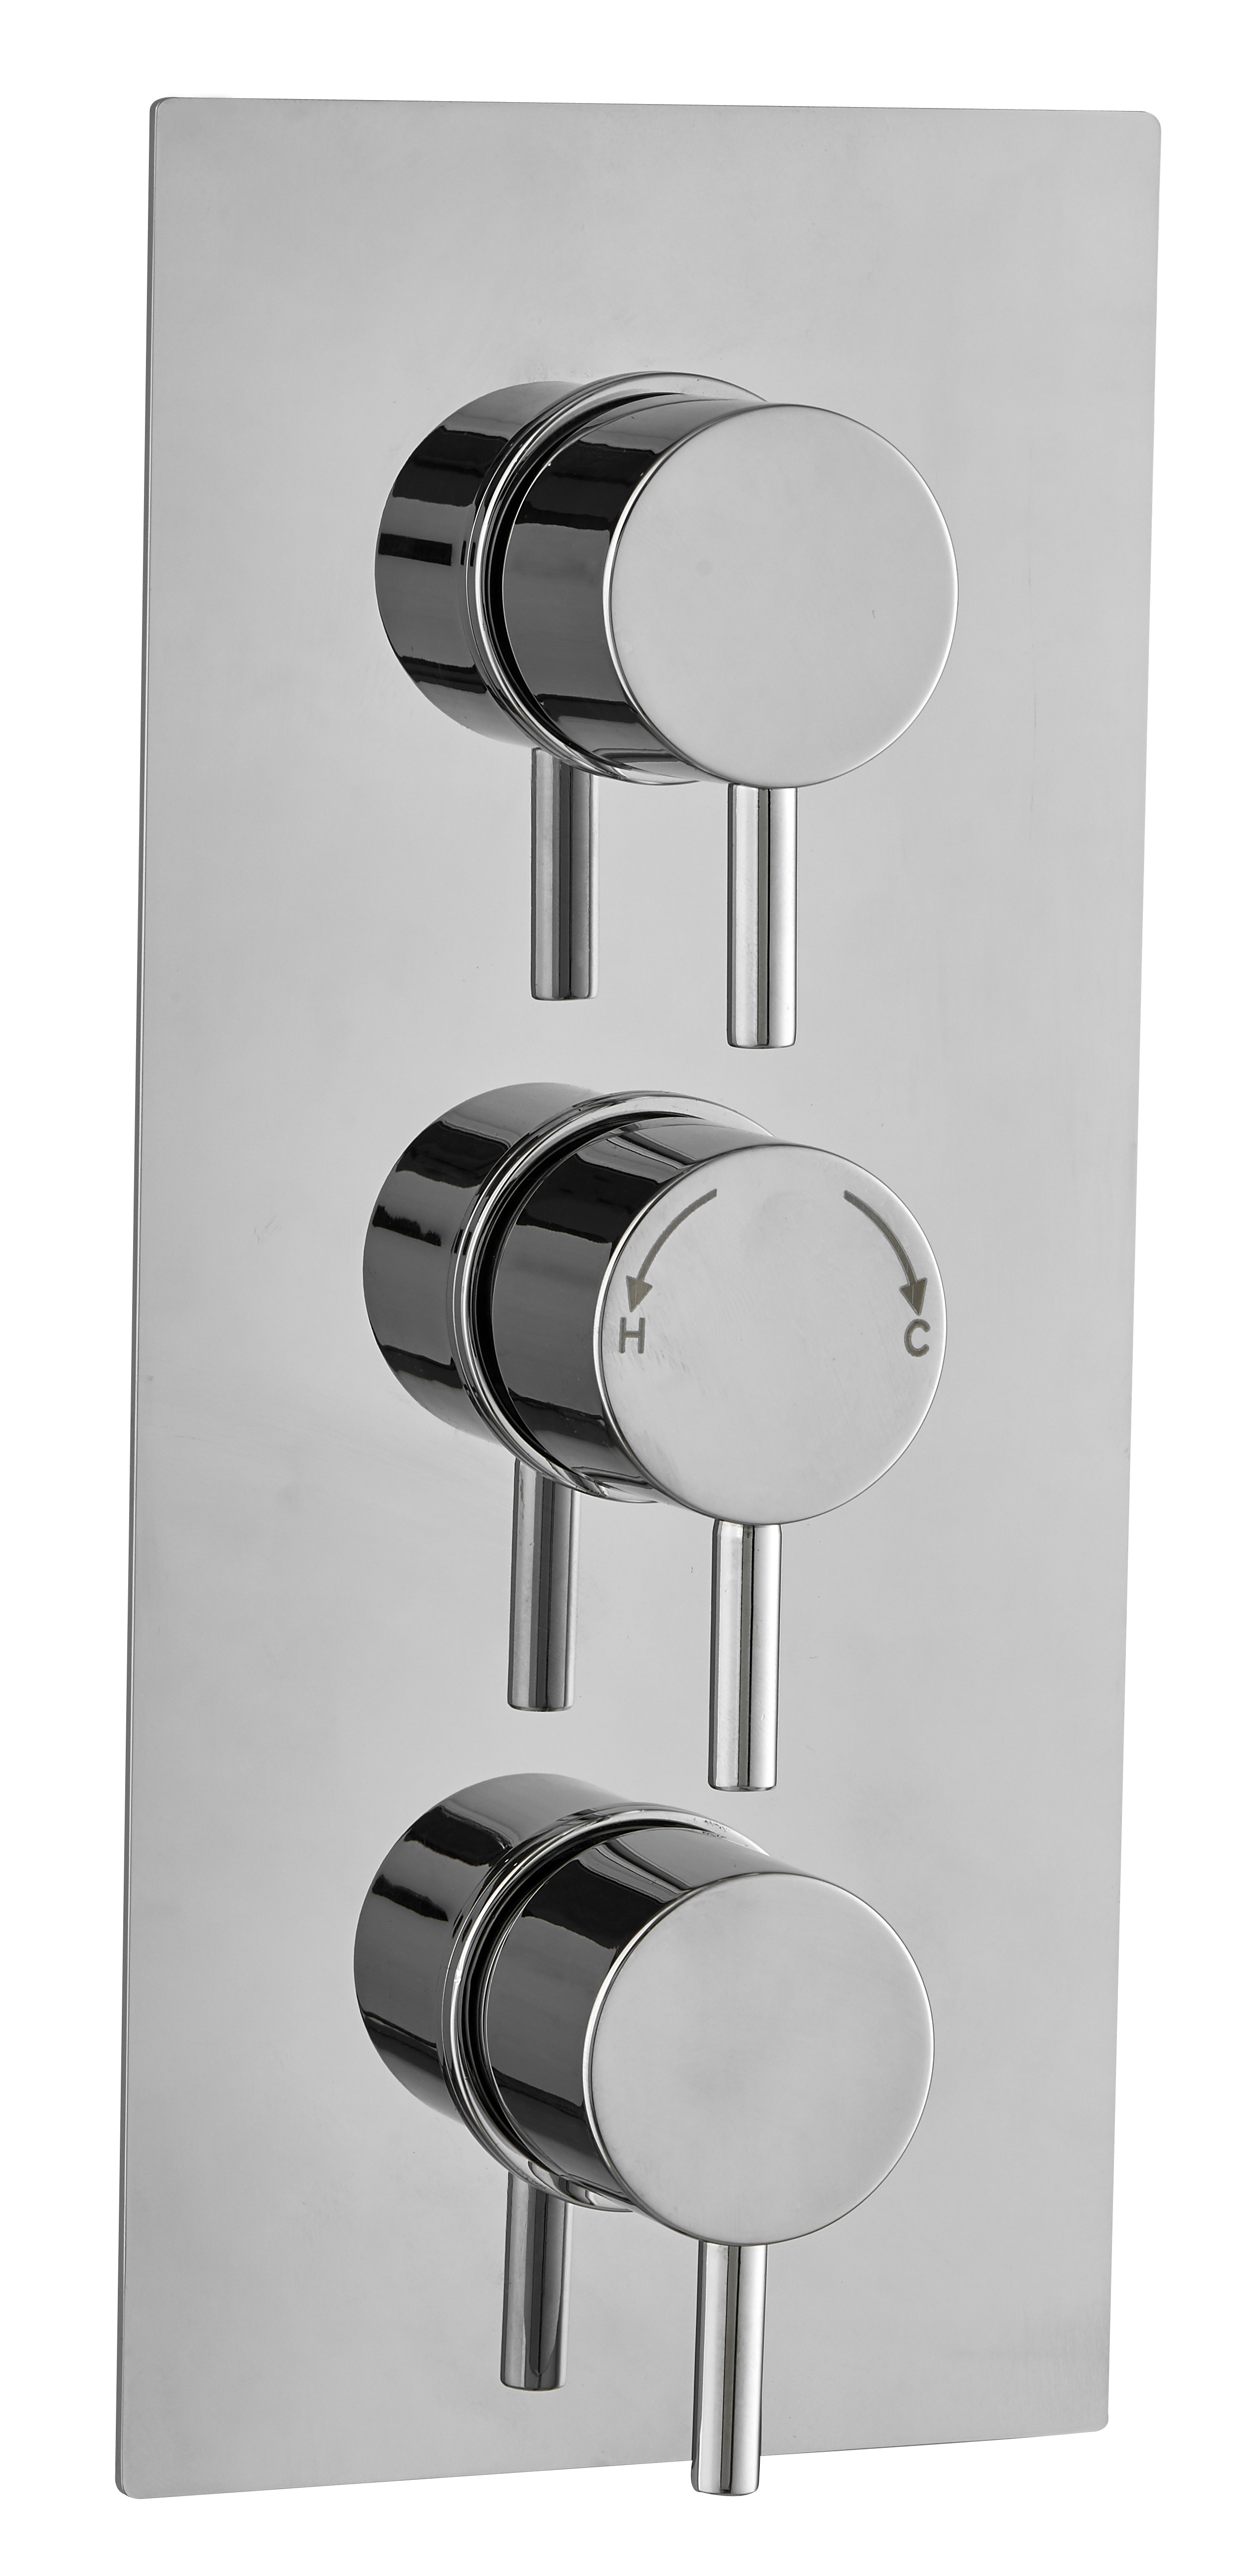 Image Is Loading Round Concealed Thermostatic Shower Mixer Valve 3 Handle